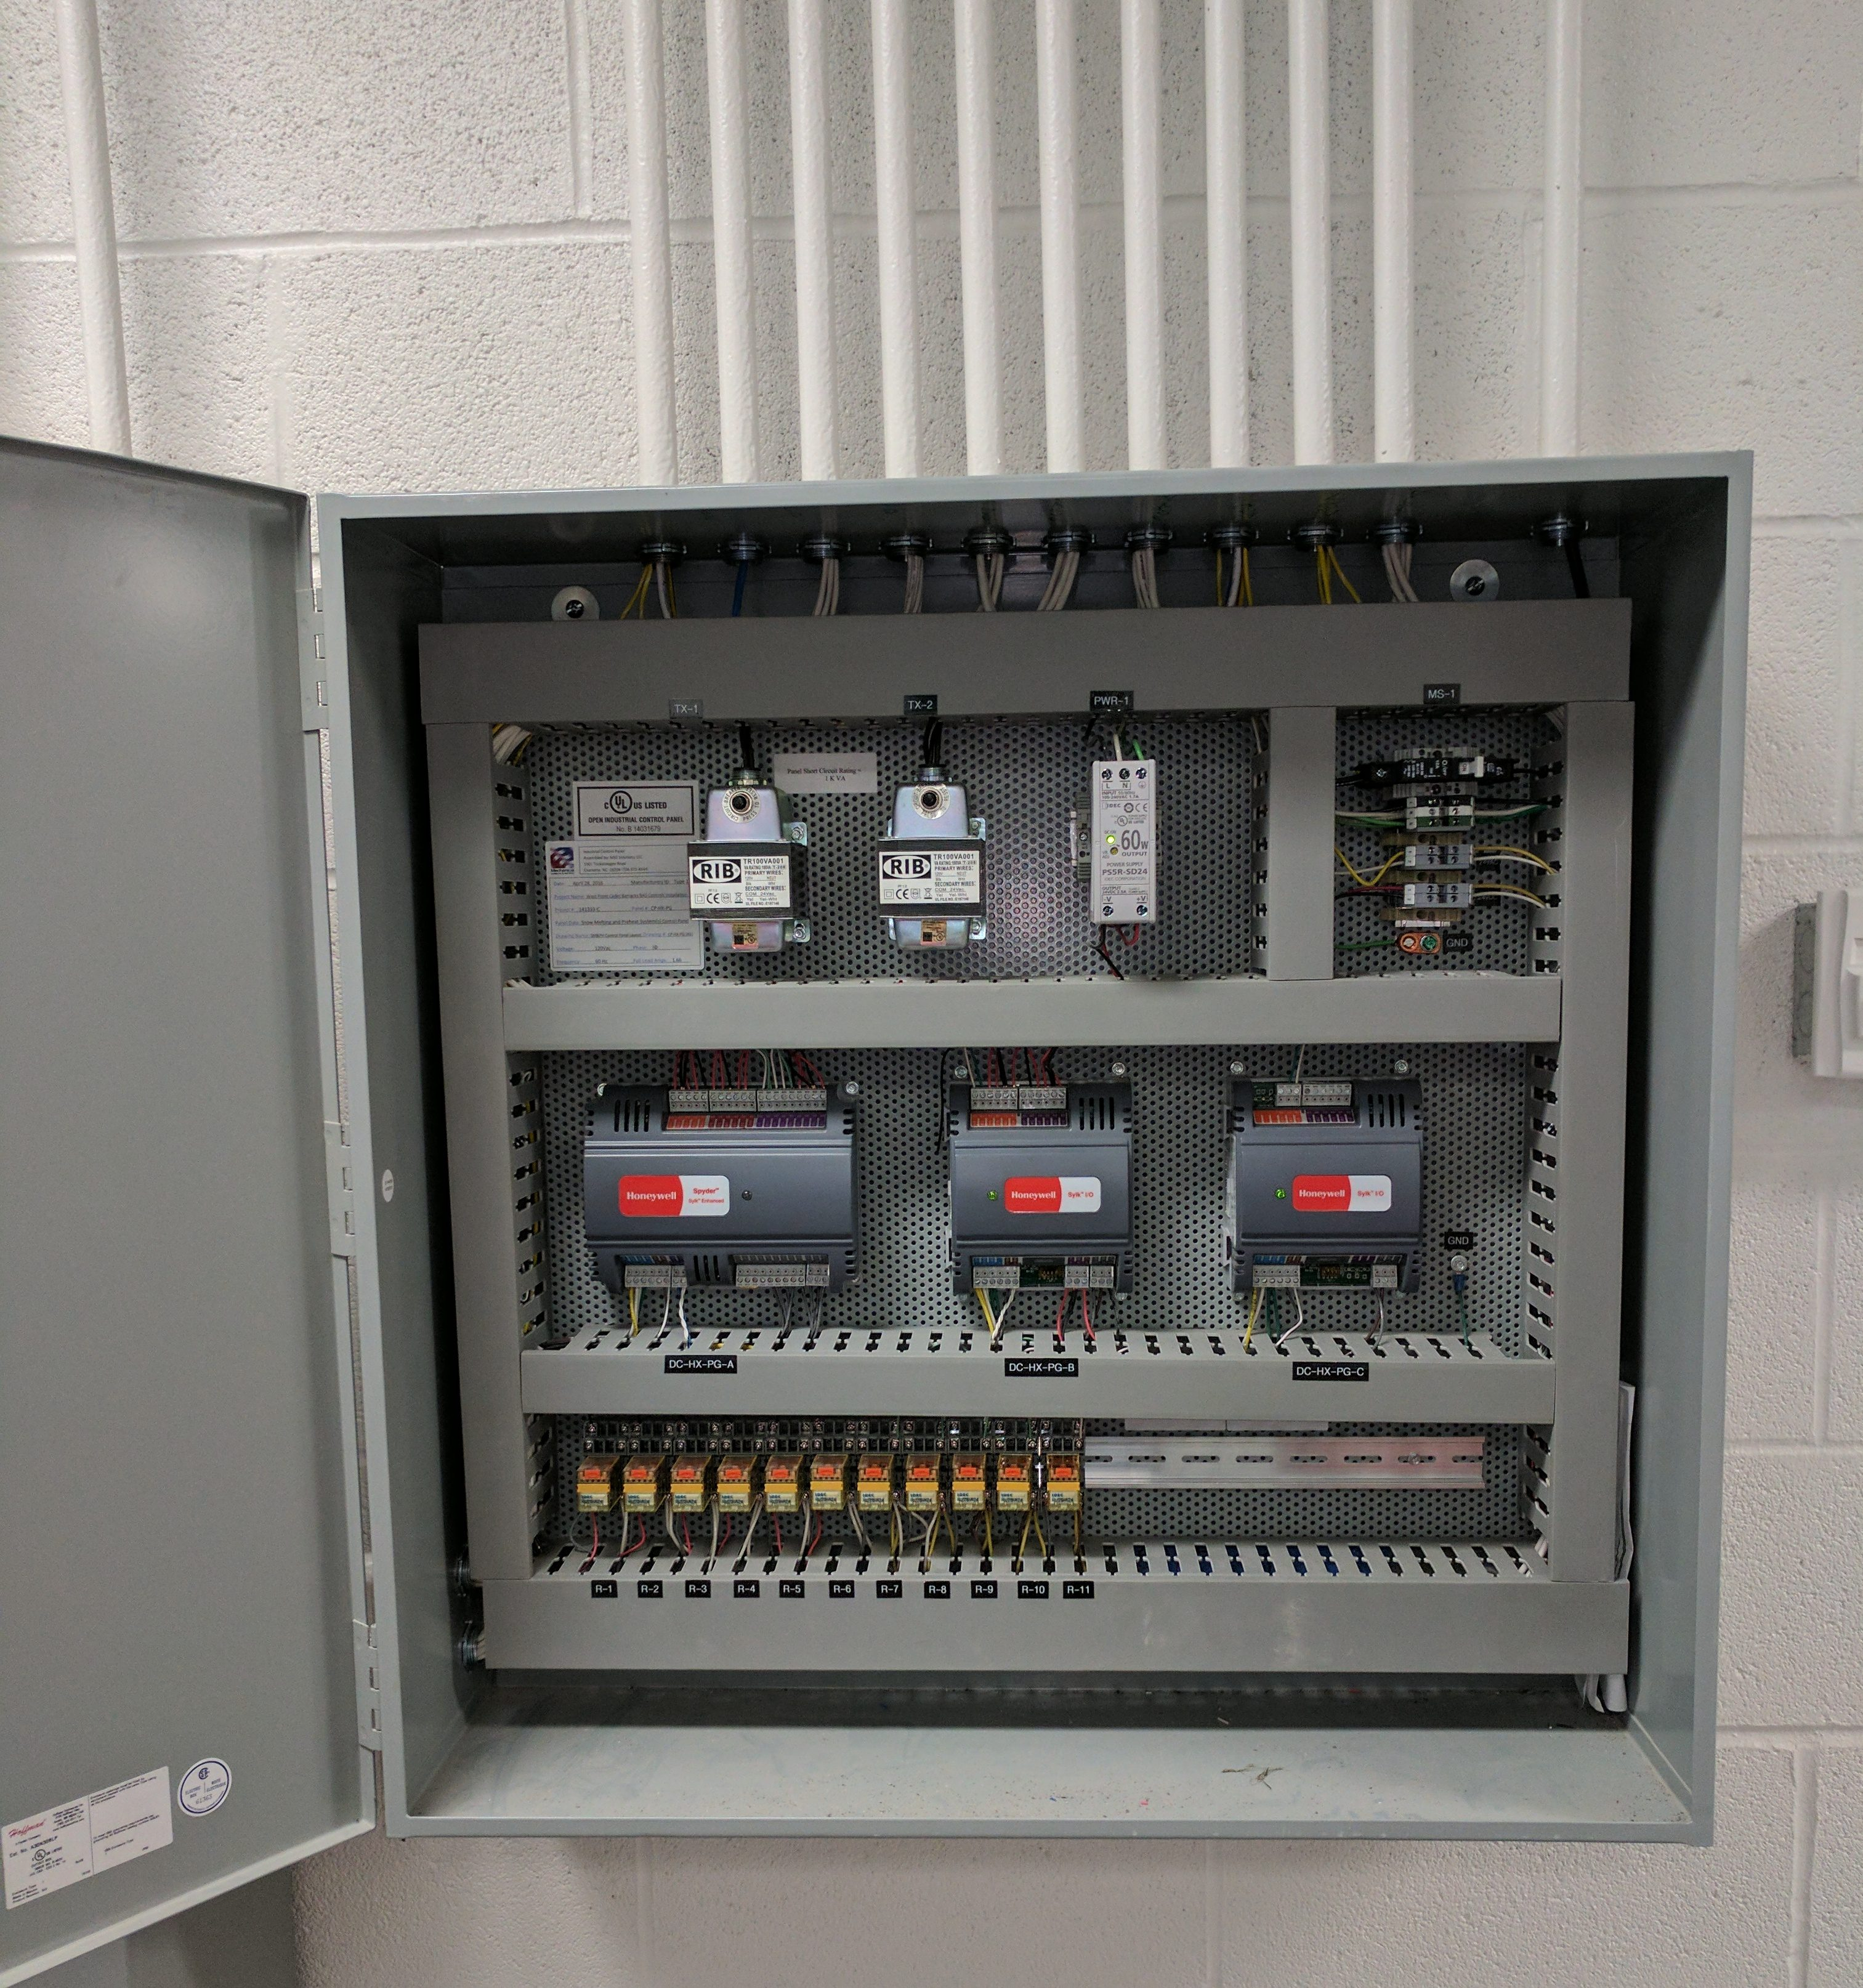 Commercial Electrical Design Build Inc Service Entrance Wiring Diagram Our Services Include